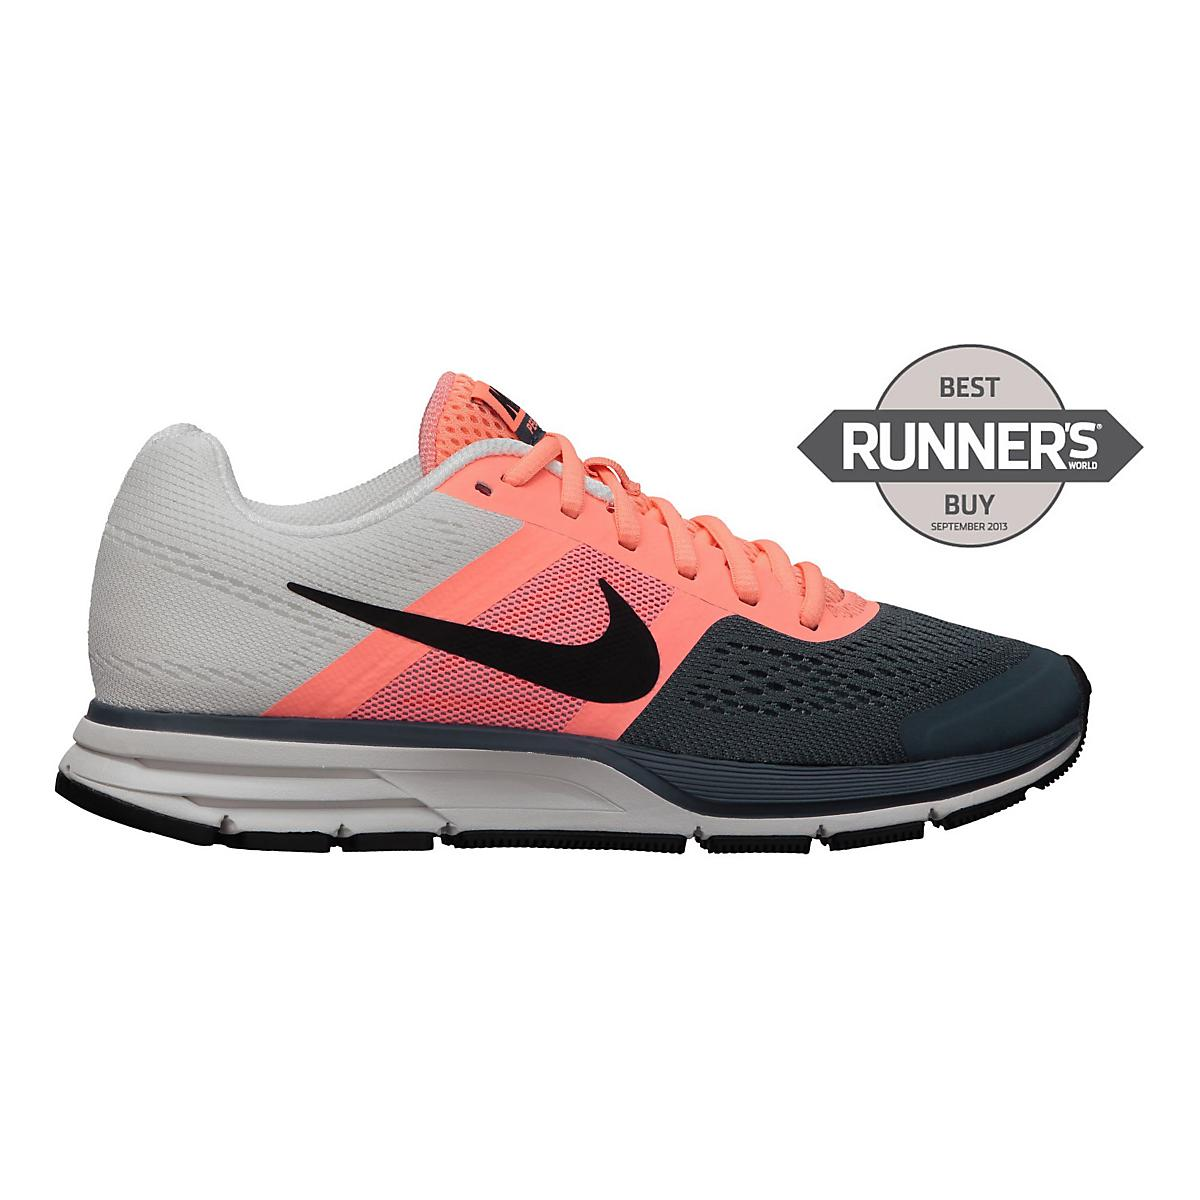 Womens Nike Air Pegasus+ 30 Running Shoe at Road Runner Sports 03b4874e3